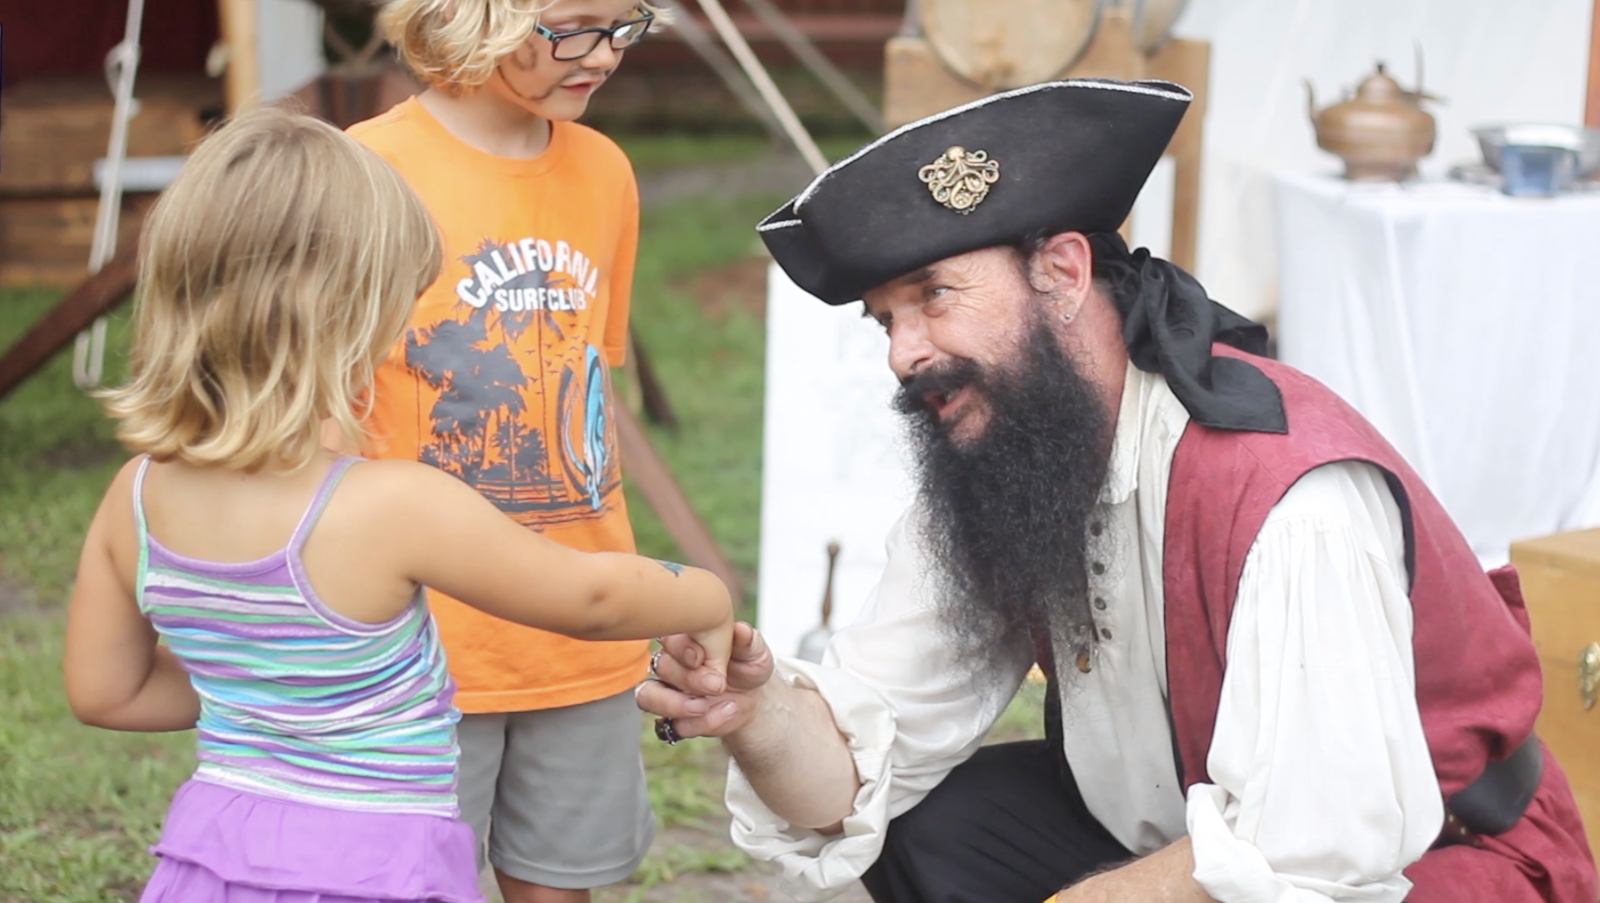 The annual Beaufort Pirate Invasion is great for families